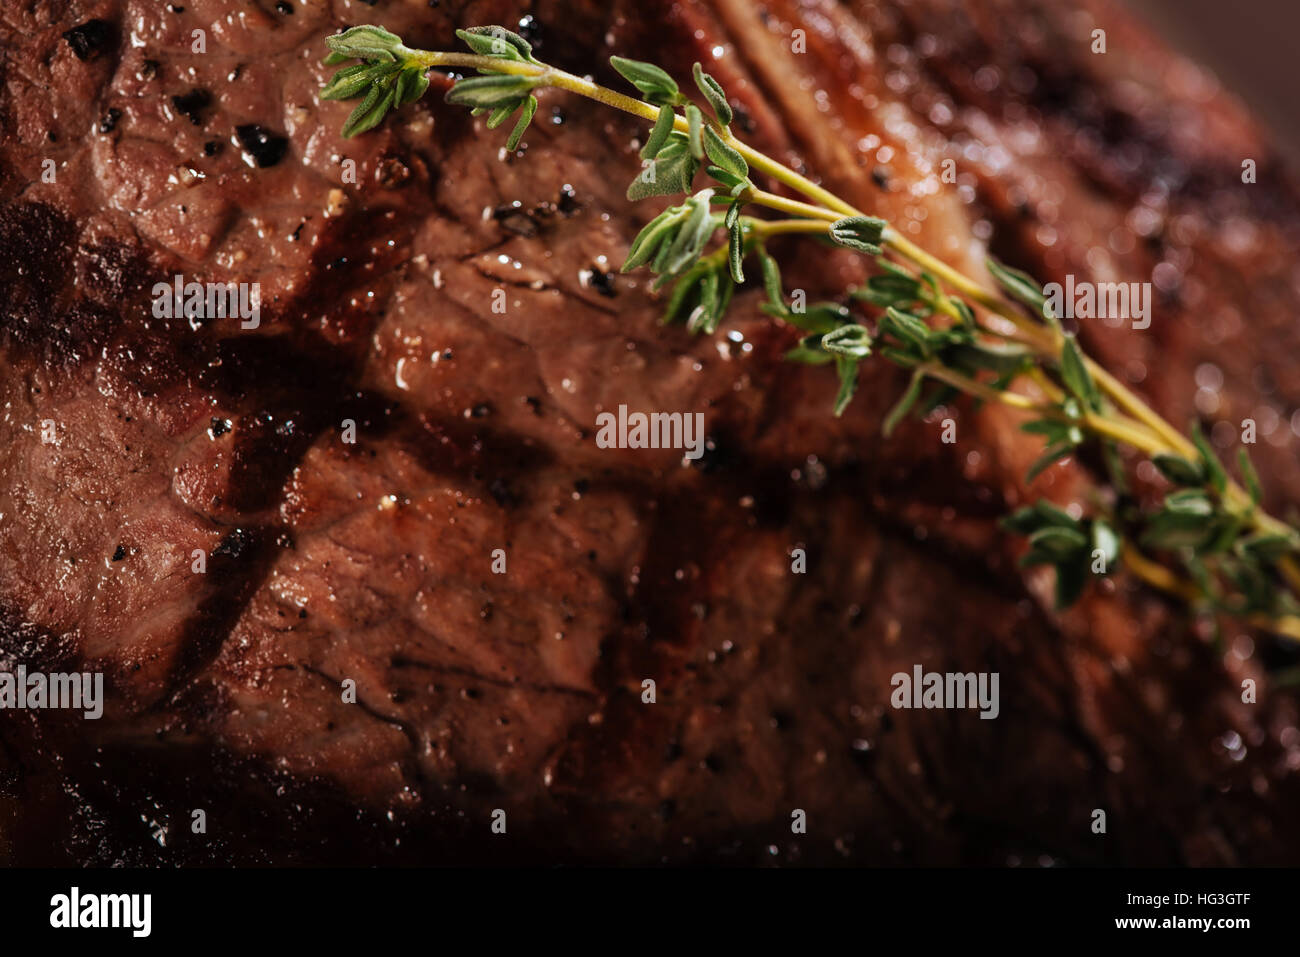 Close up of juicy steak being cooked with rosemary - Stock Image